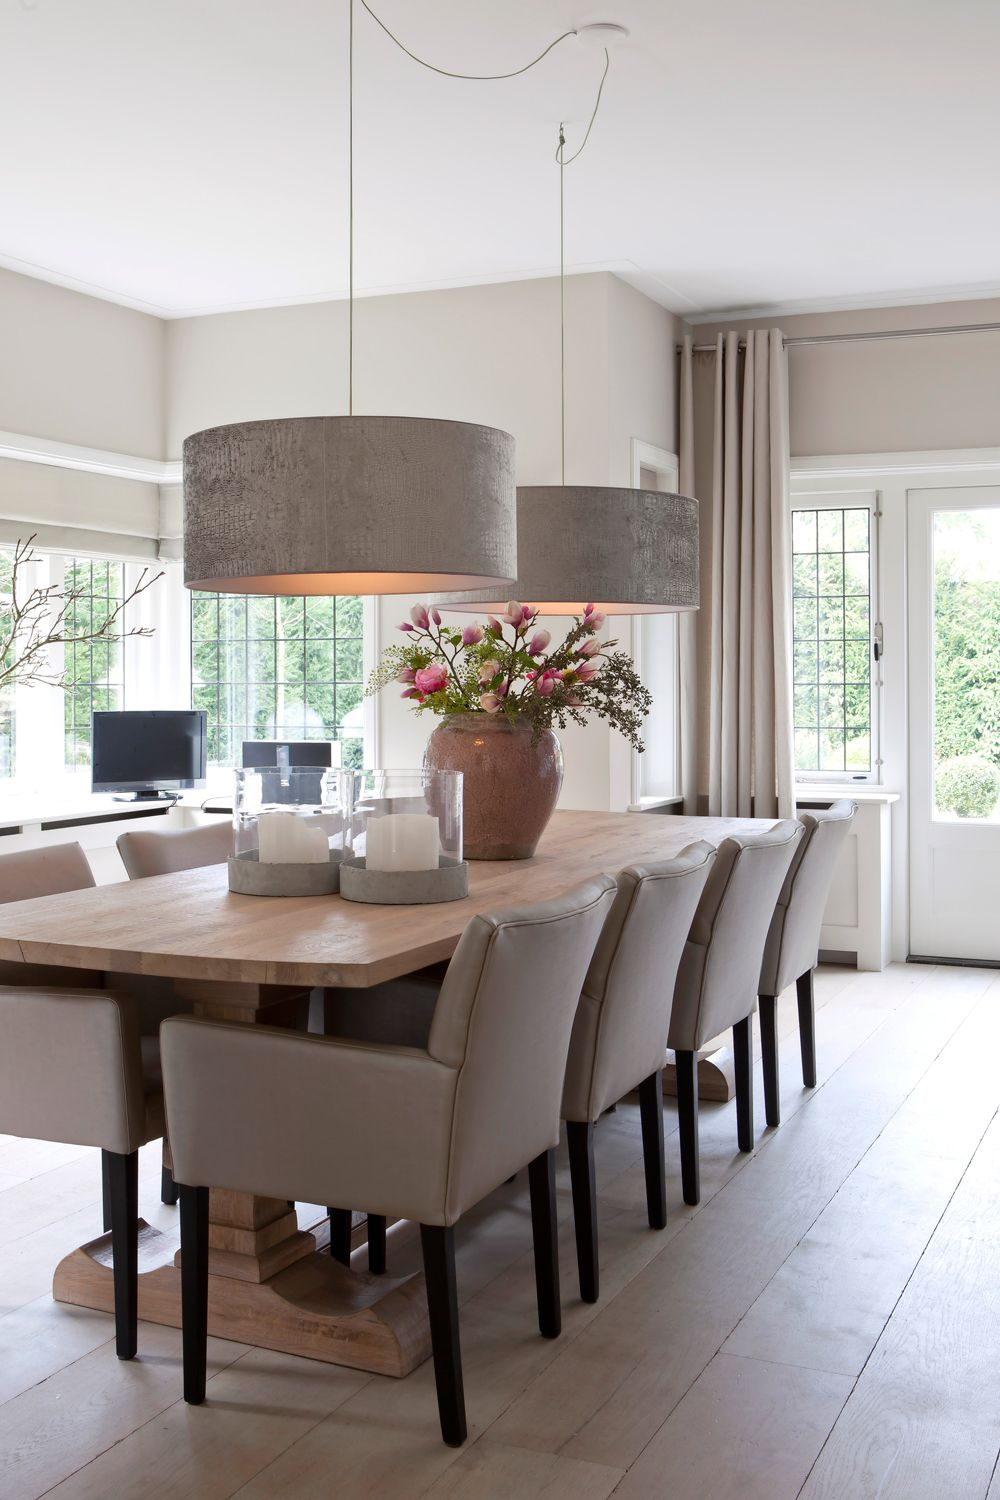 Pin by anke bakx beening on home pinterest dining room room and